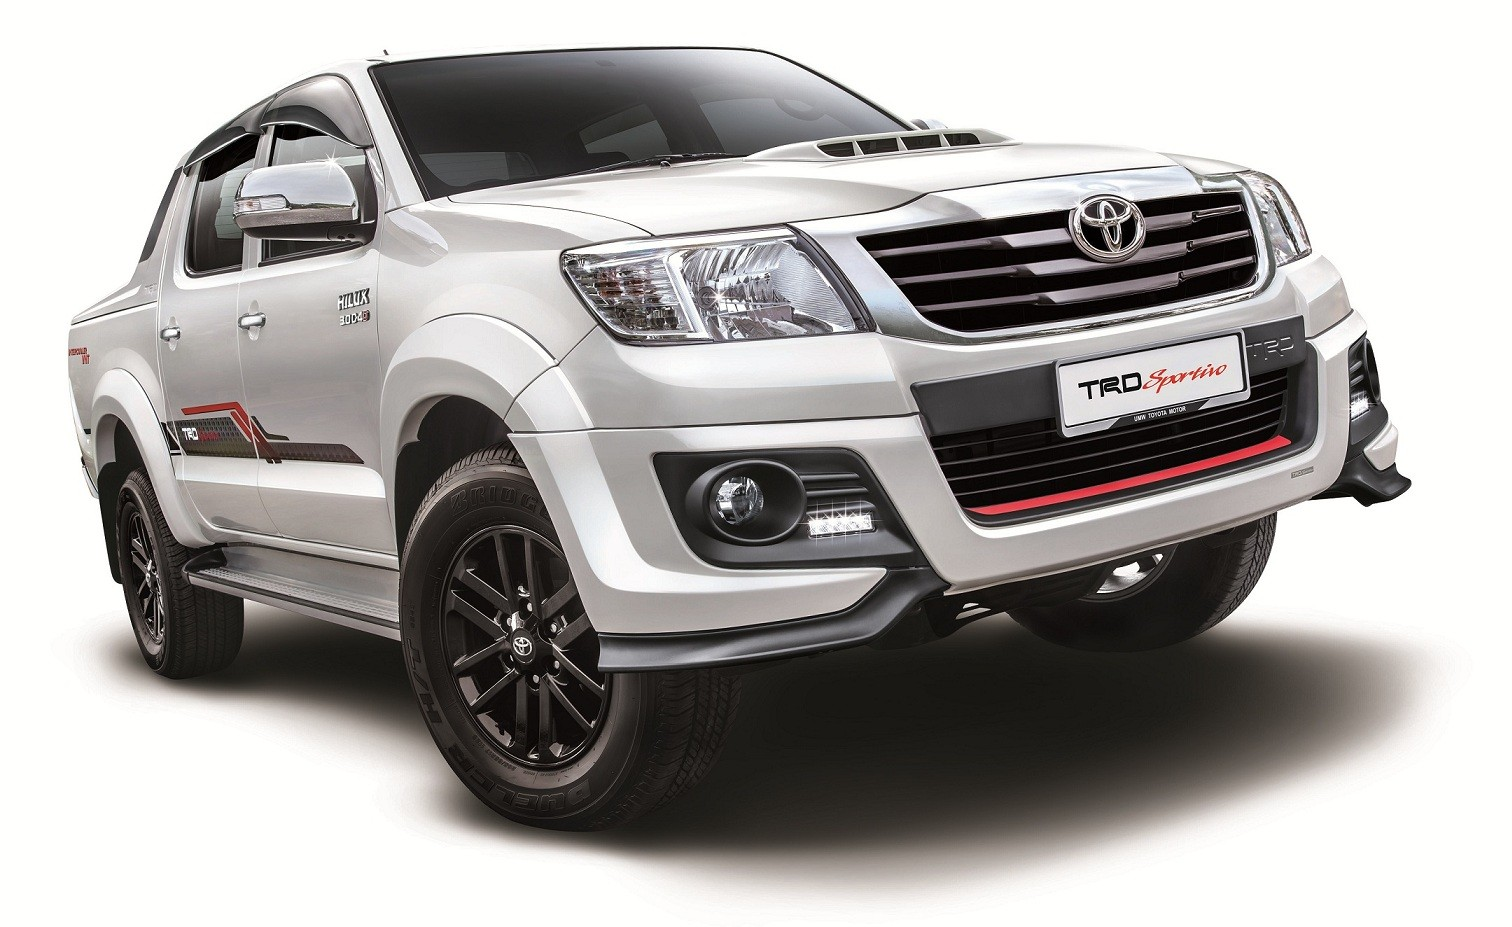 2015 Toyota Hilux Updated New Trd Sportivo Variant